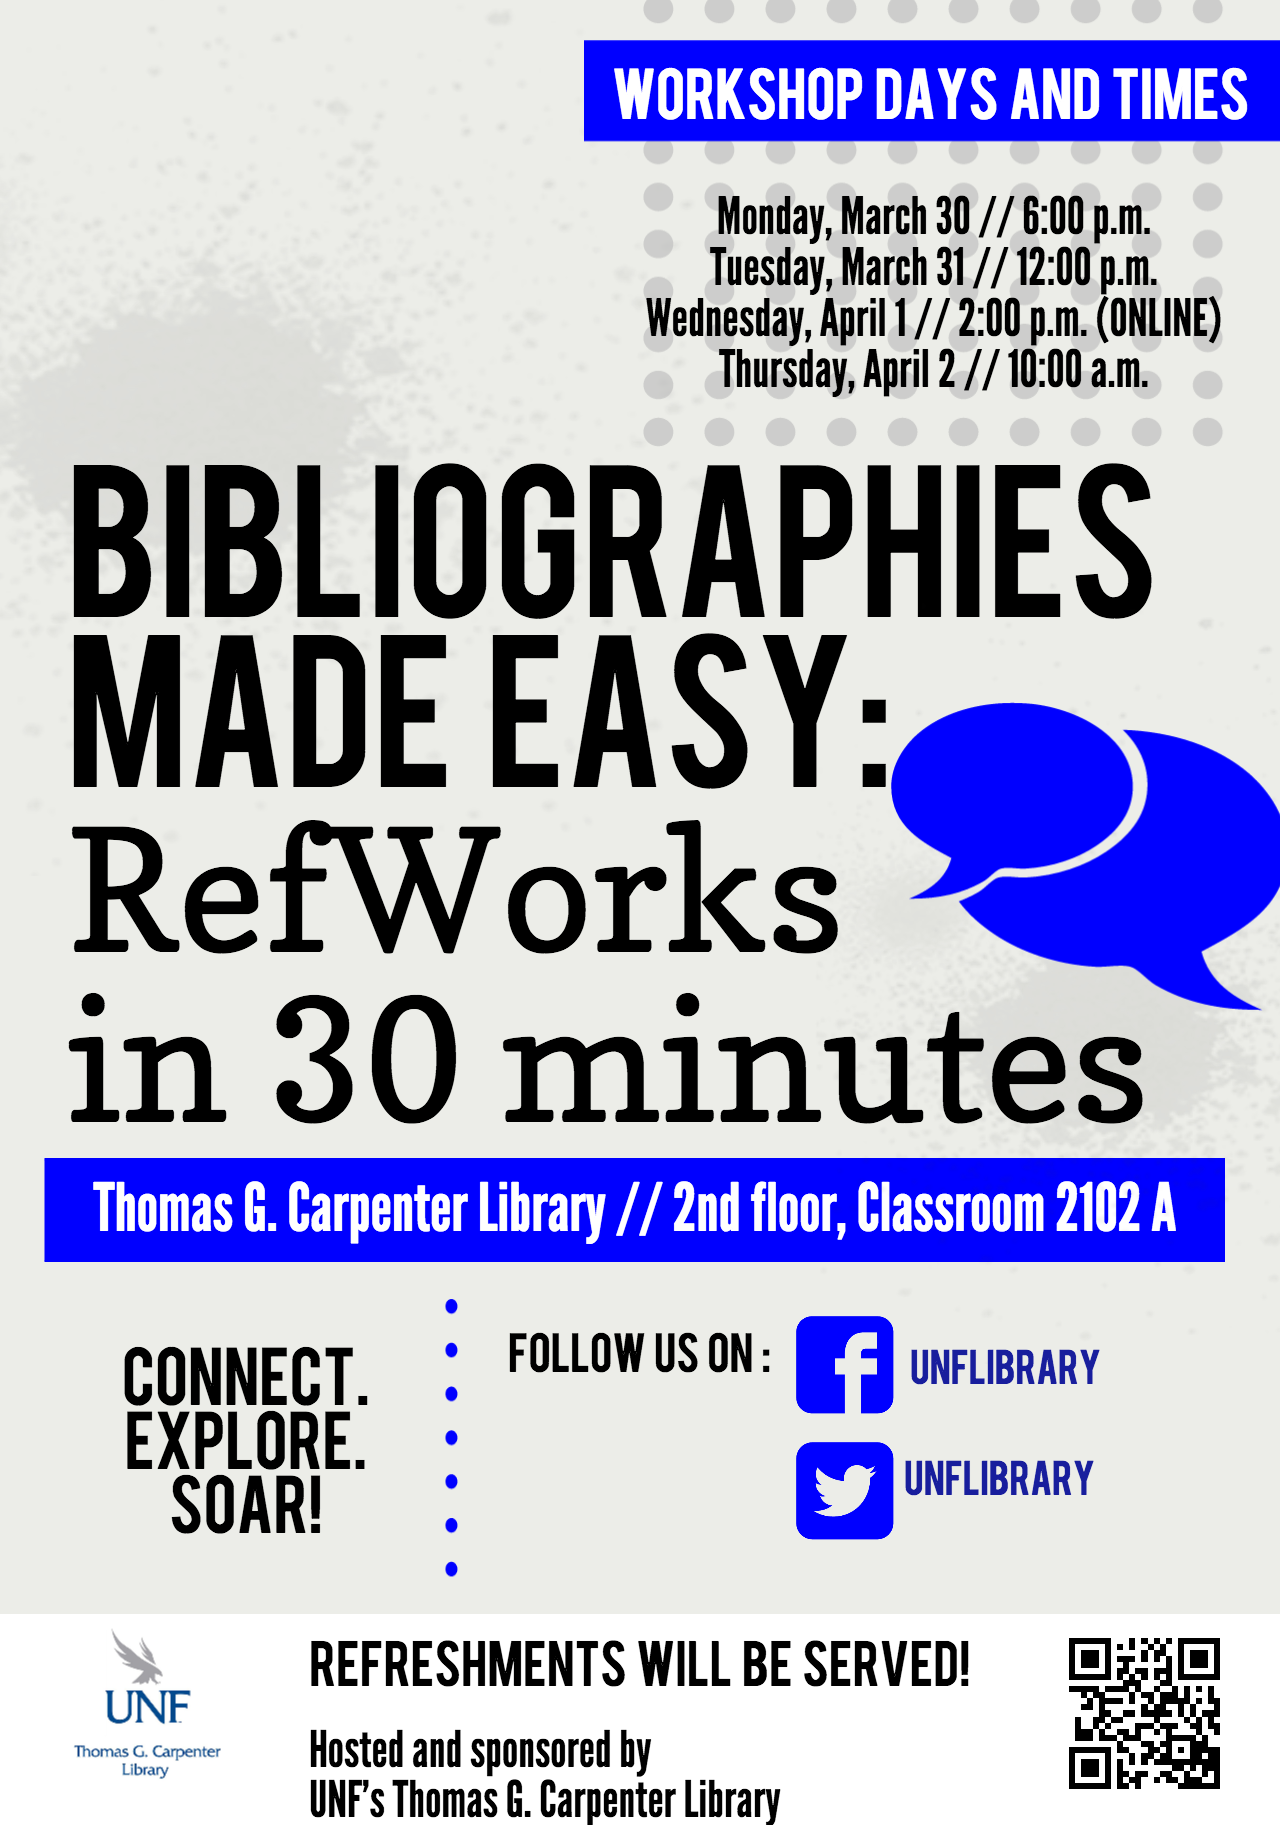 Bibliographies made easy workshop poster